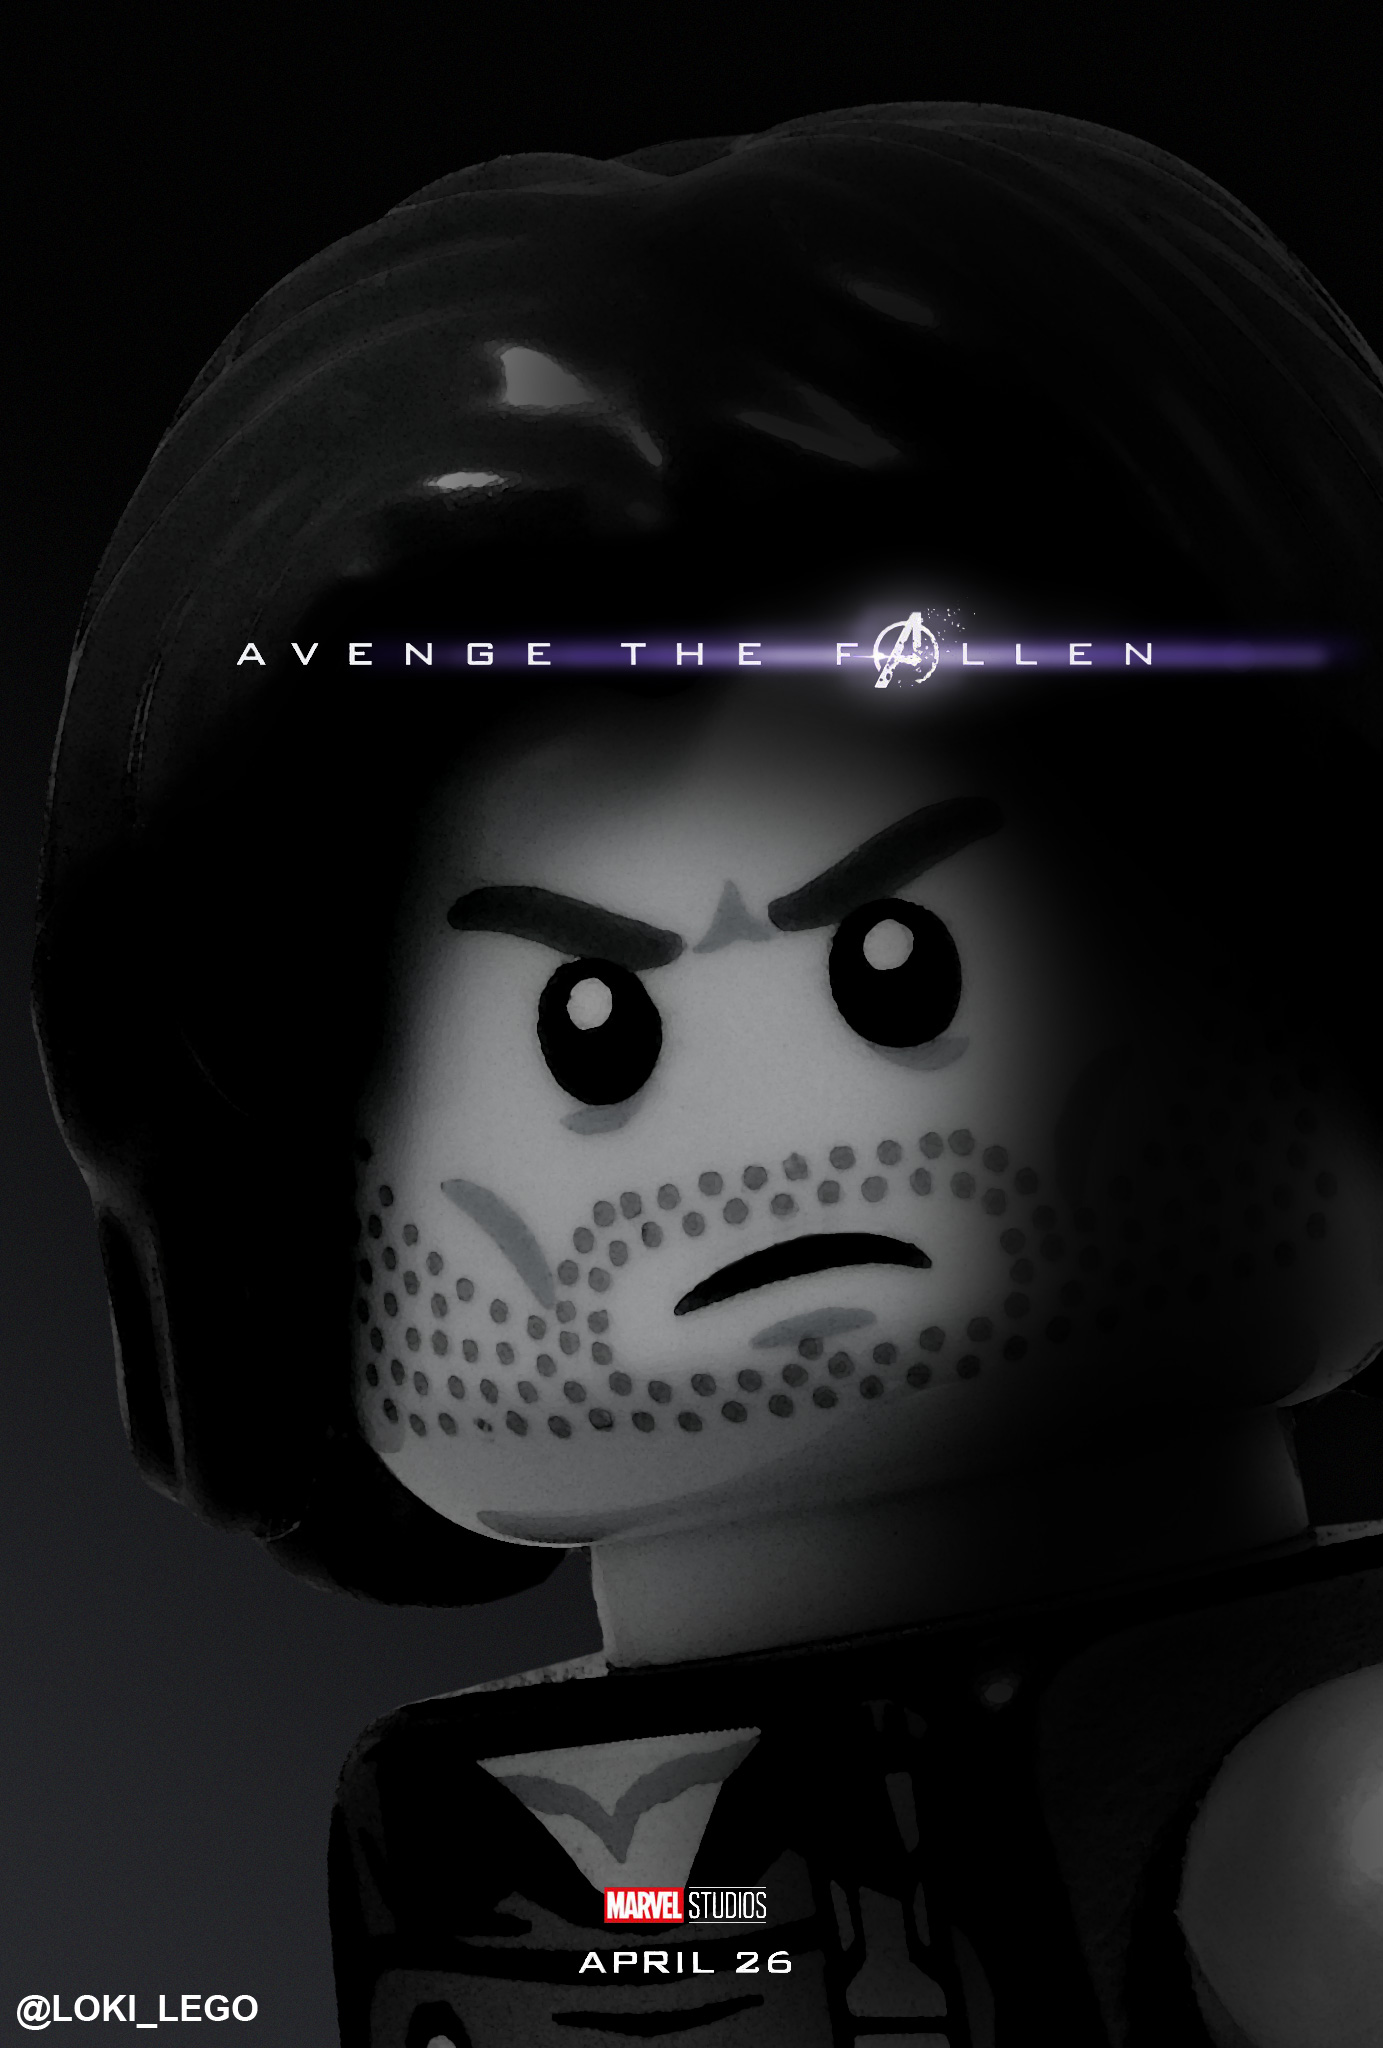 32 Avengers Endgame Character Posters Recreated In Lego Future